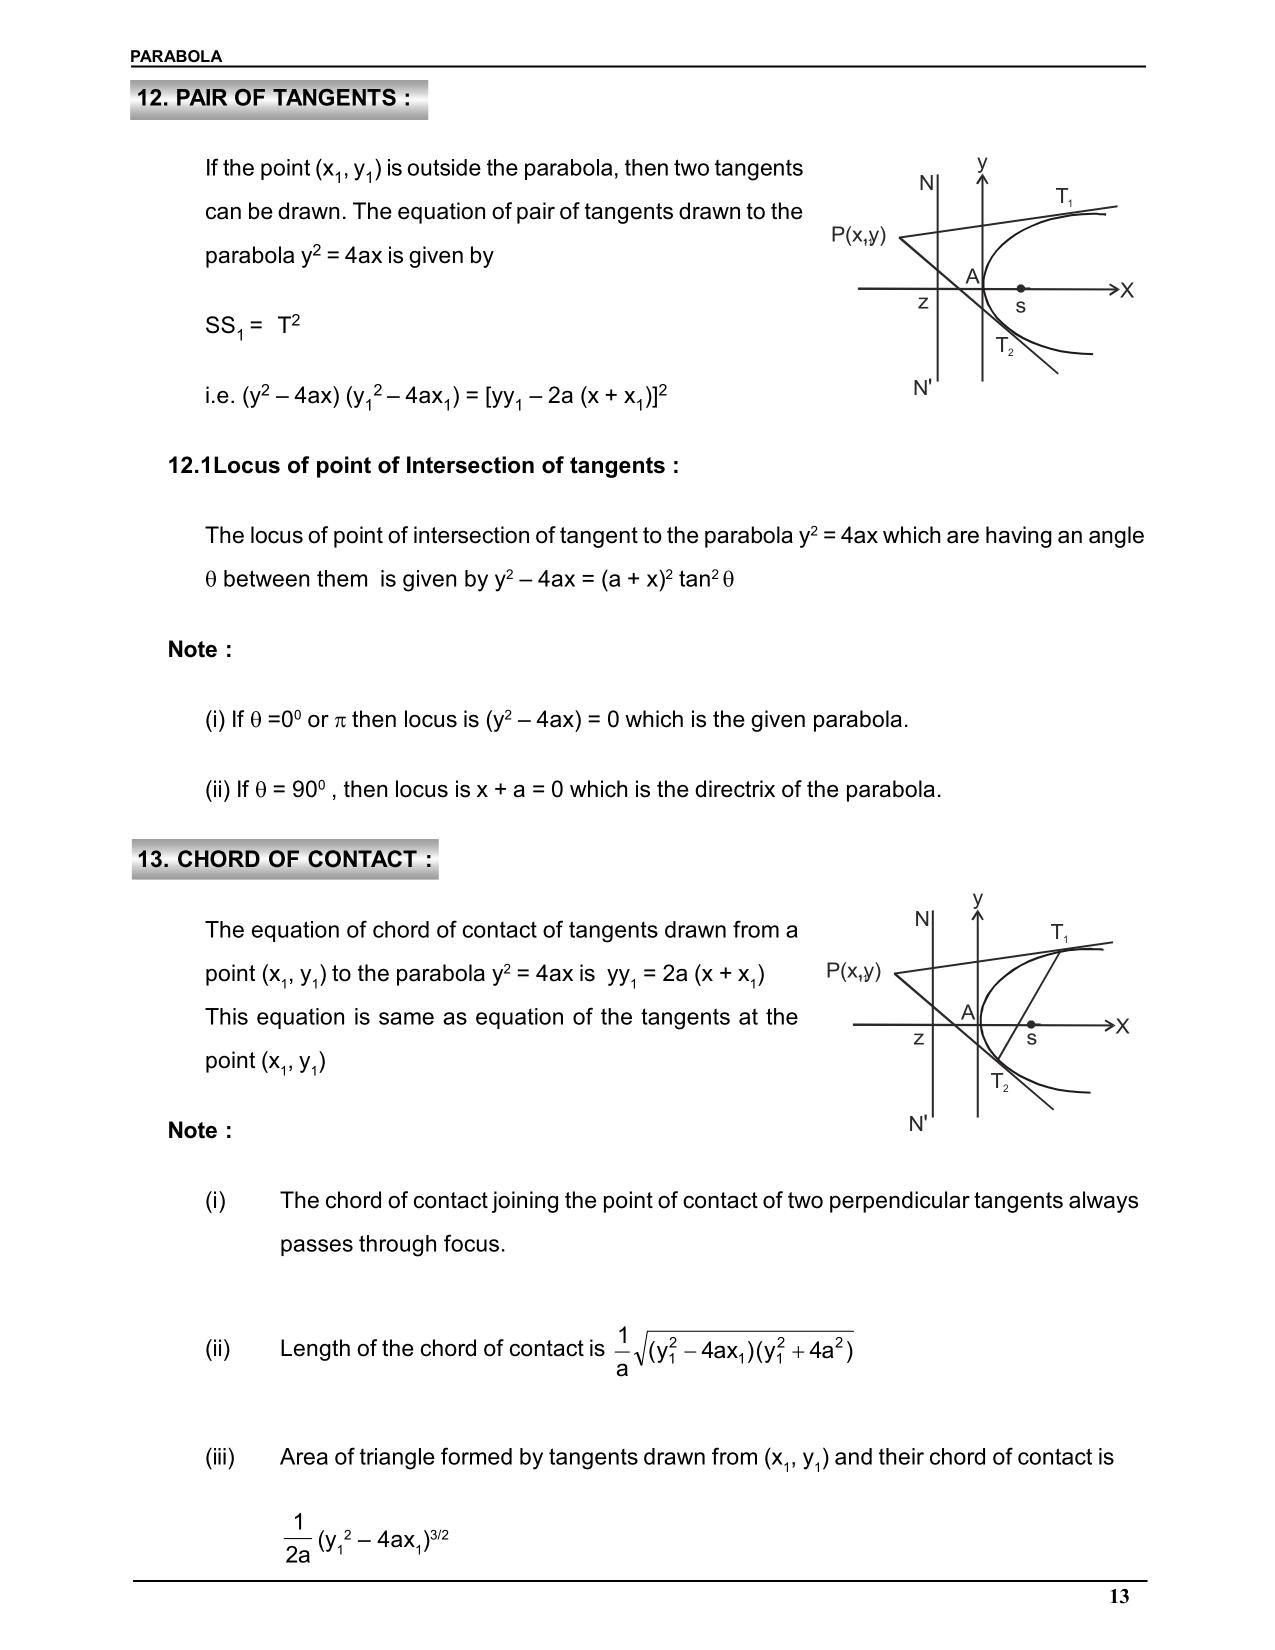 Parabola Class 11 Notes & Numericals: Pair of Tangents